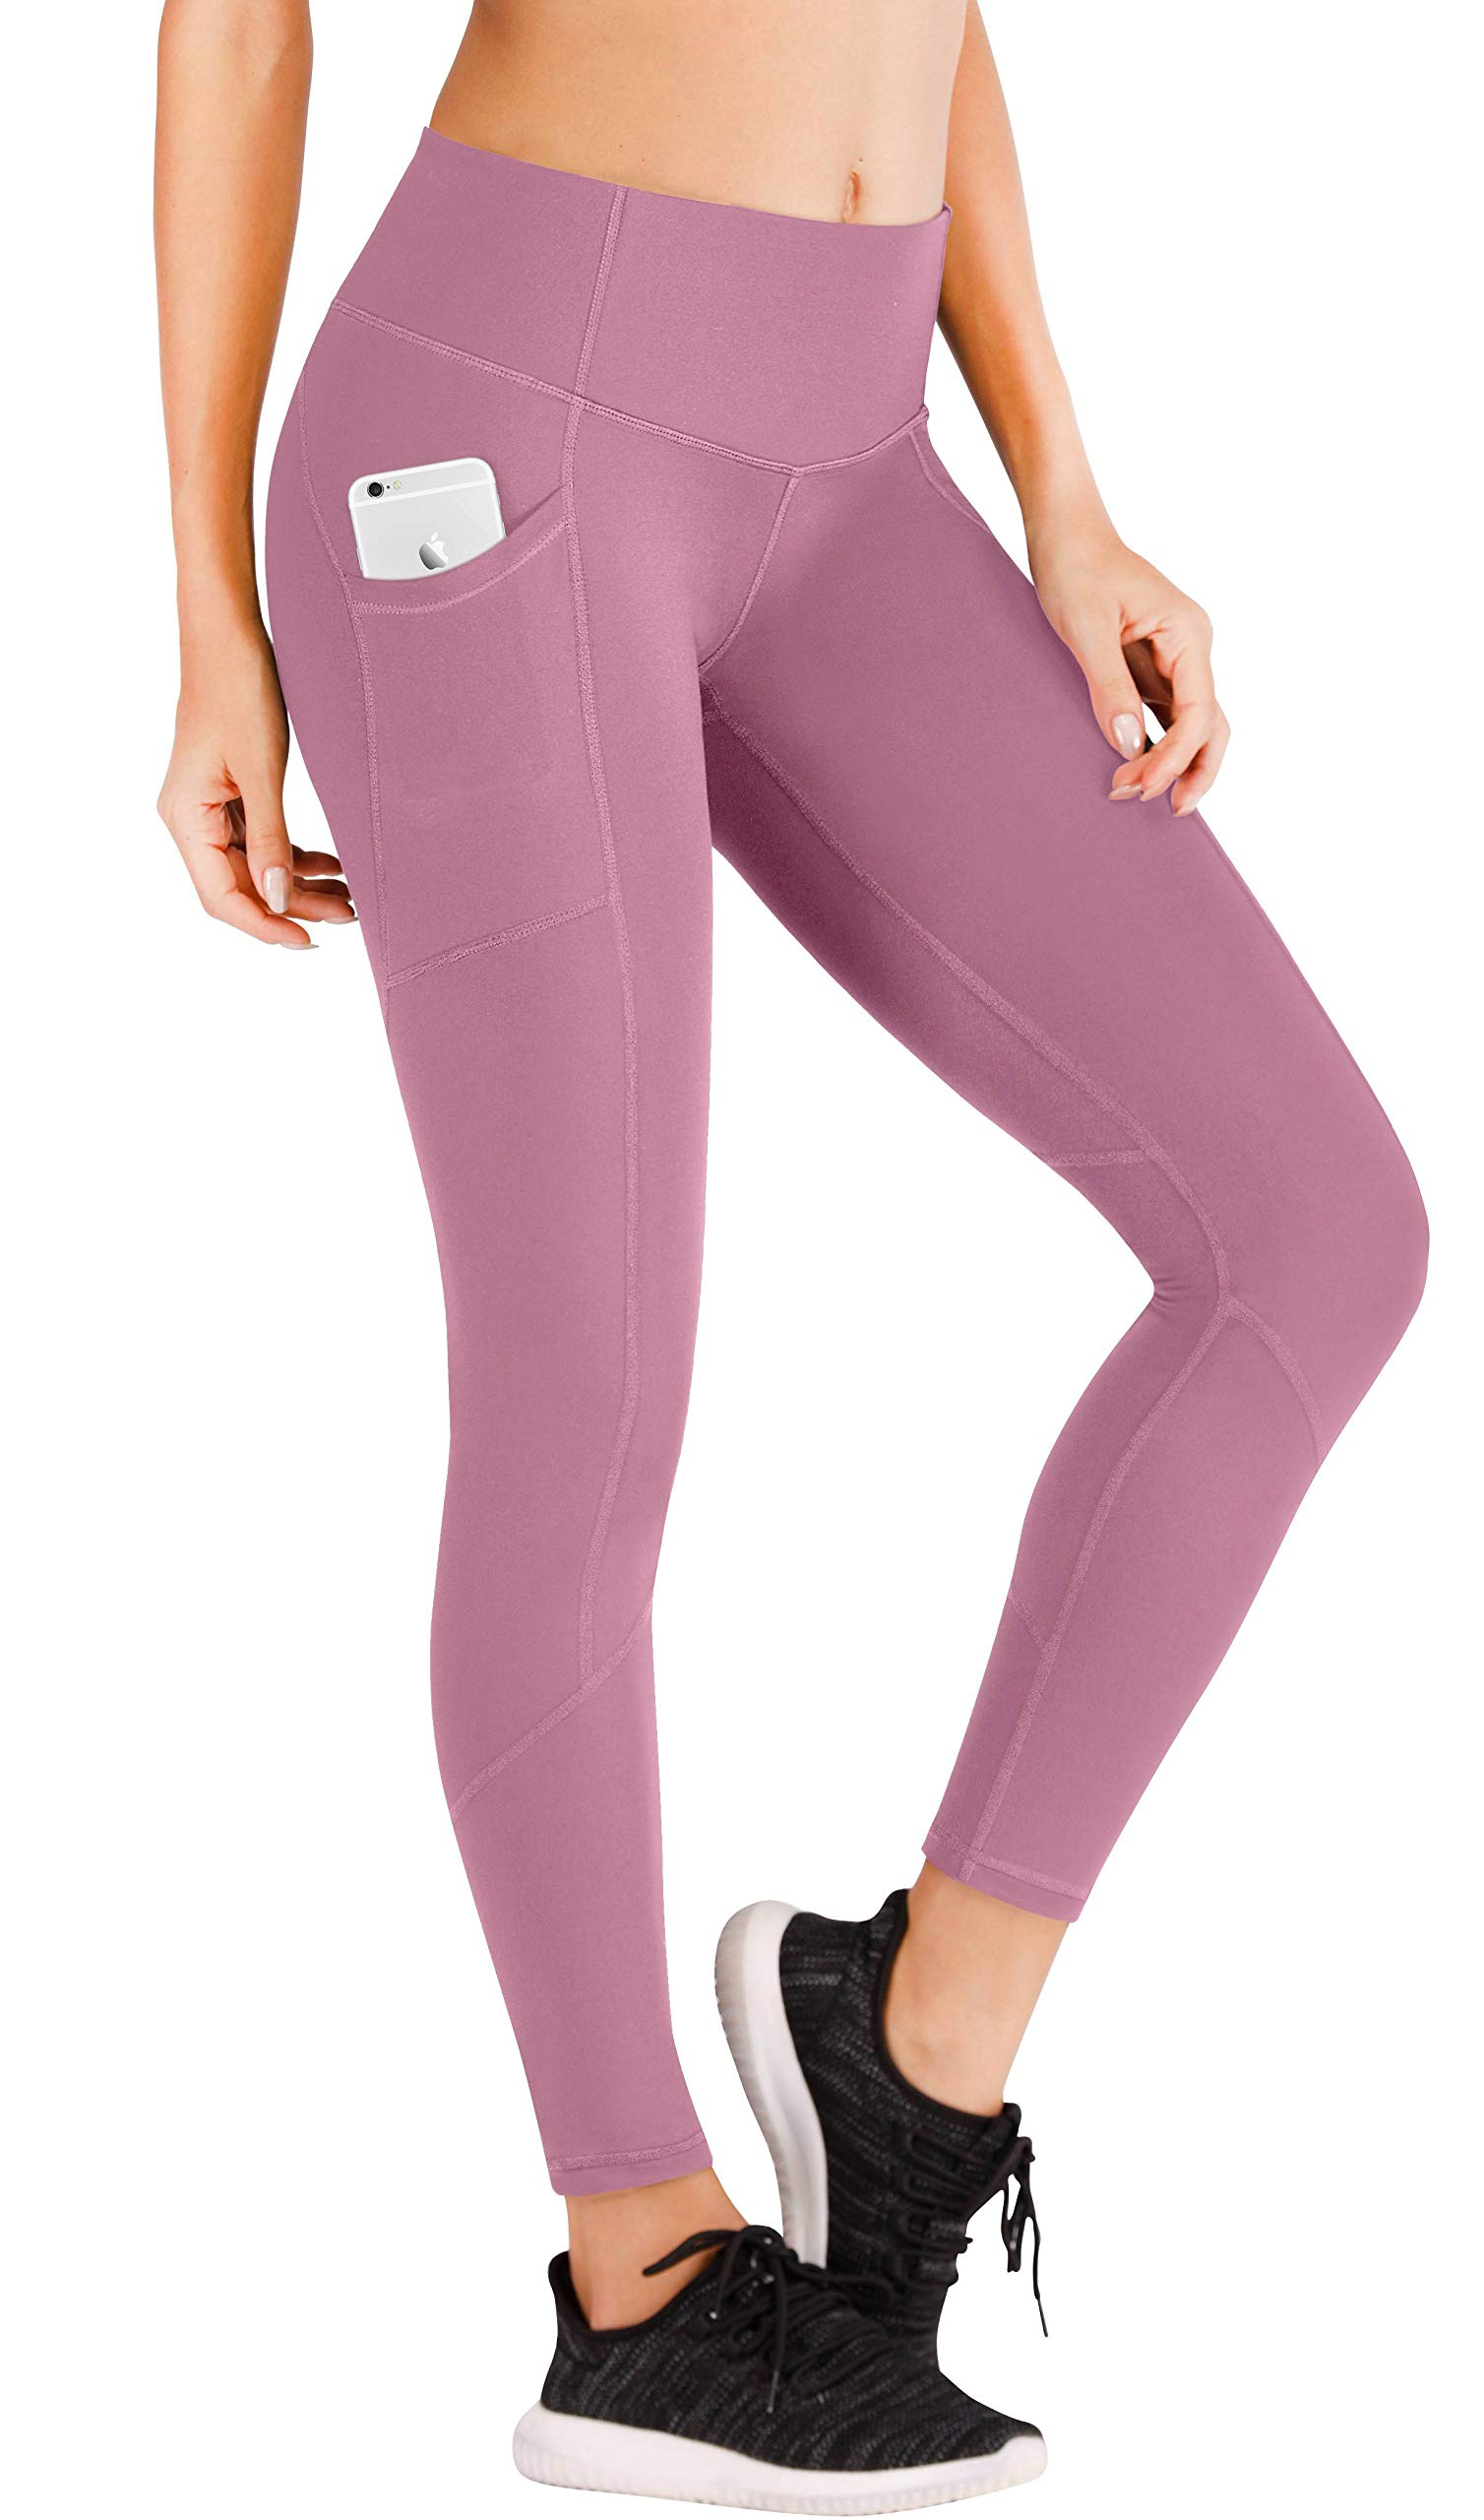 Ewedoos Yoga Pants with Pockets for Women Ultra Soft Leggings with Pockets High Waist Workout Pants (7340 Pink, XX-Large) by Ewedoos